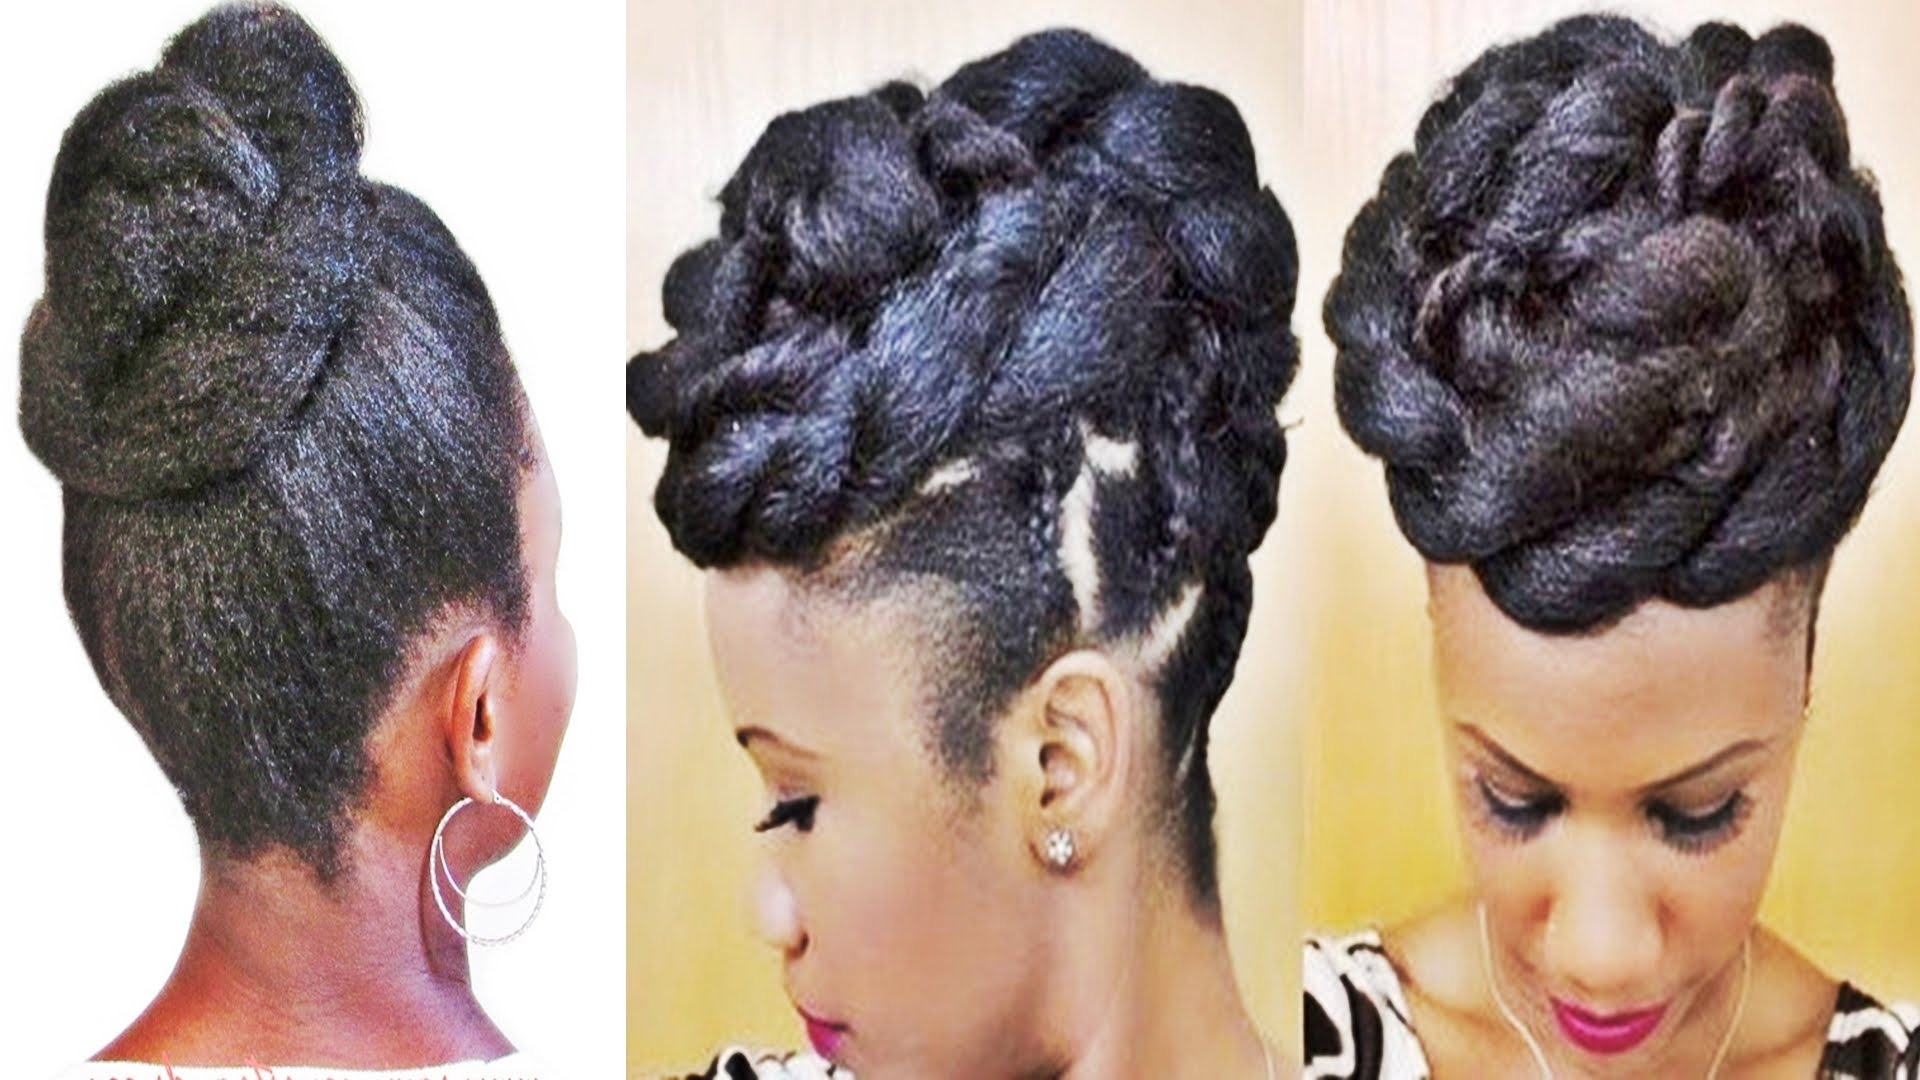 Braids And Twists Updo Hairstyle For Black Women – Youtube With Regard To Black Braids Updo Hairstyles (View 4 of 15)